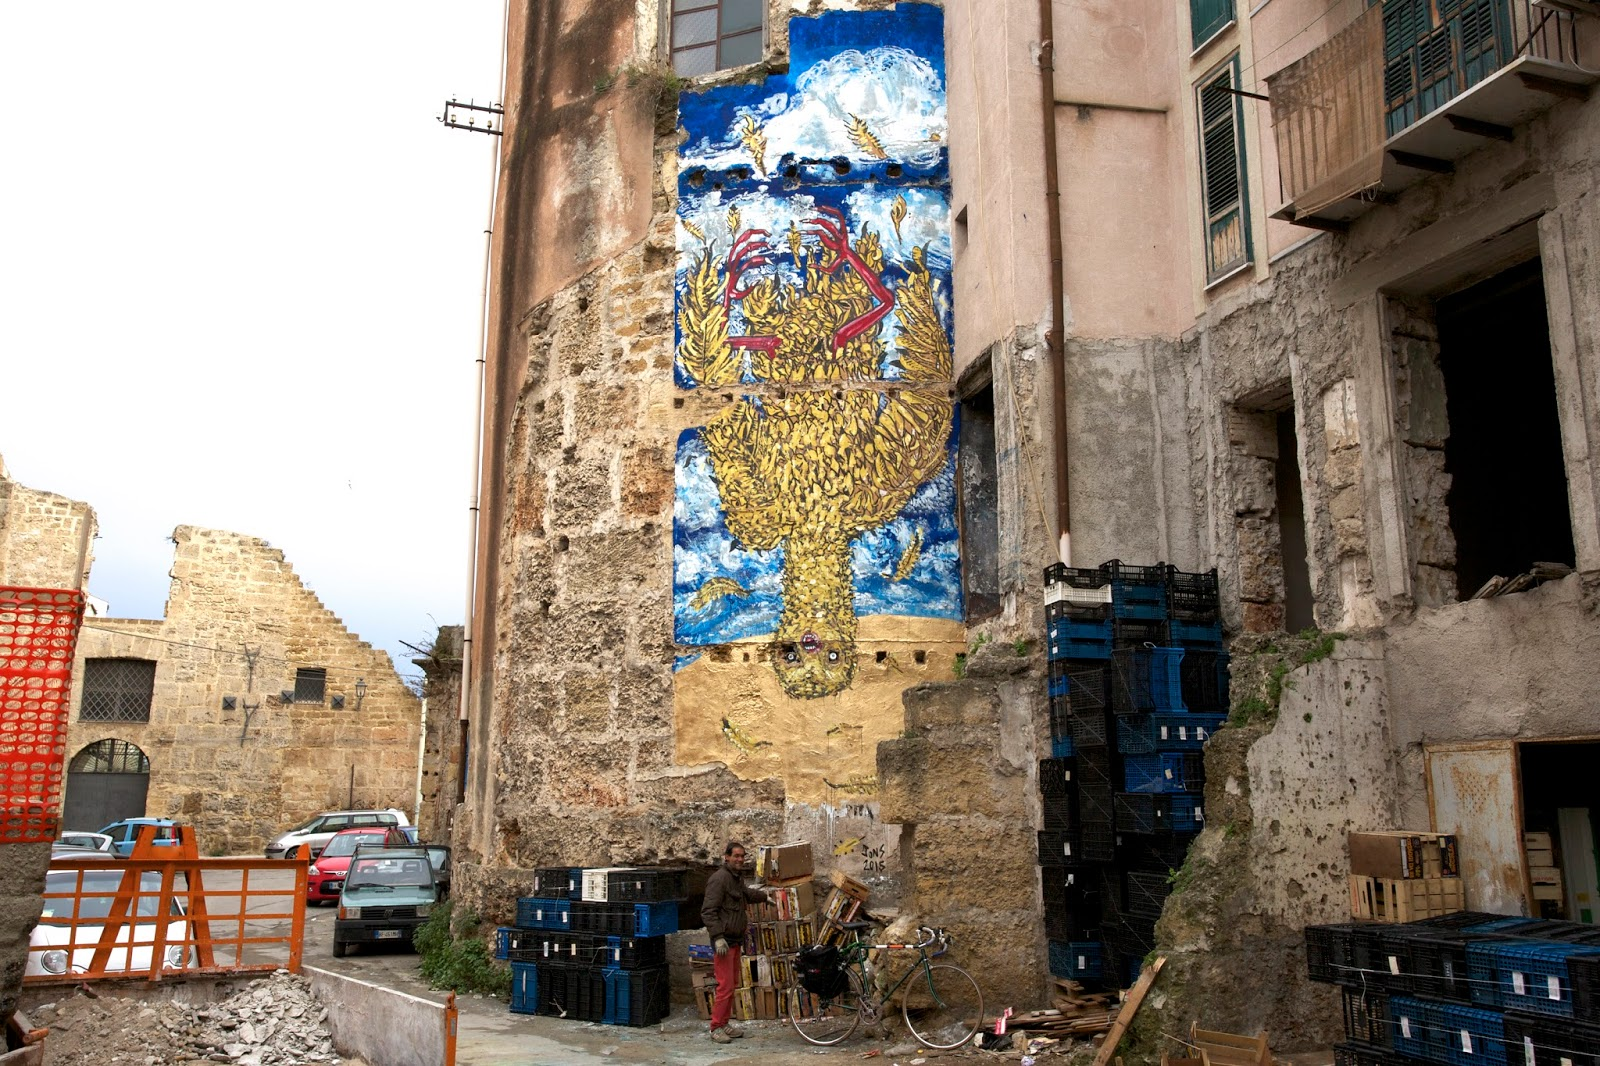 emajons-new-mural-in-vucciria-and-kalsa-palermo-01